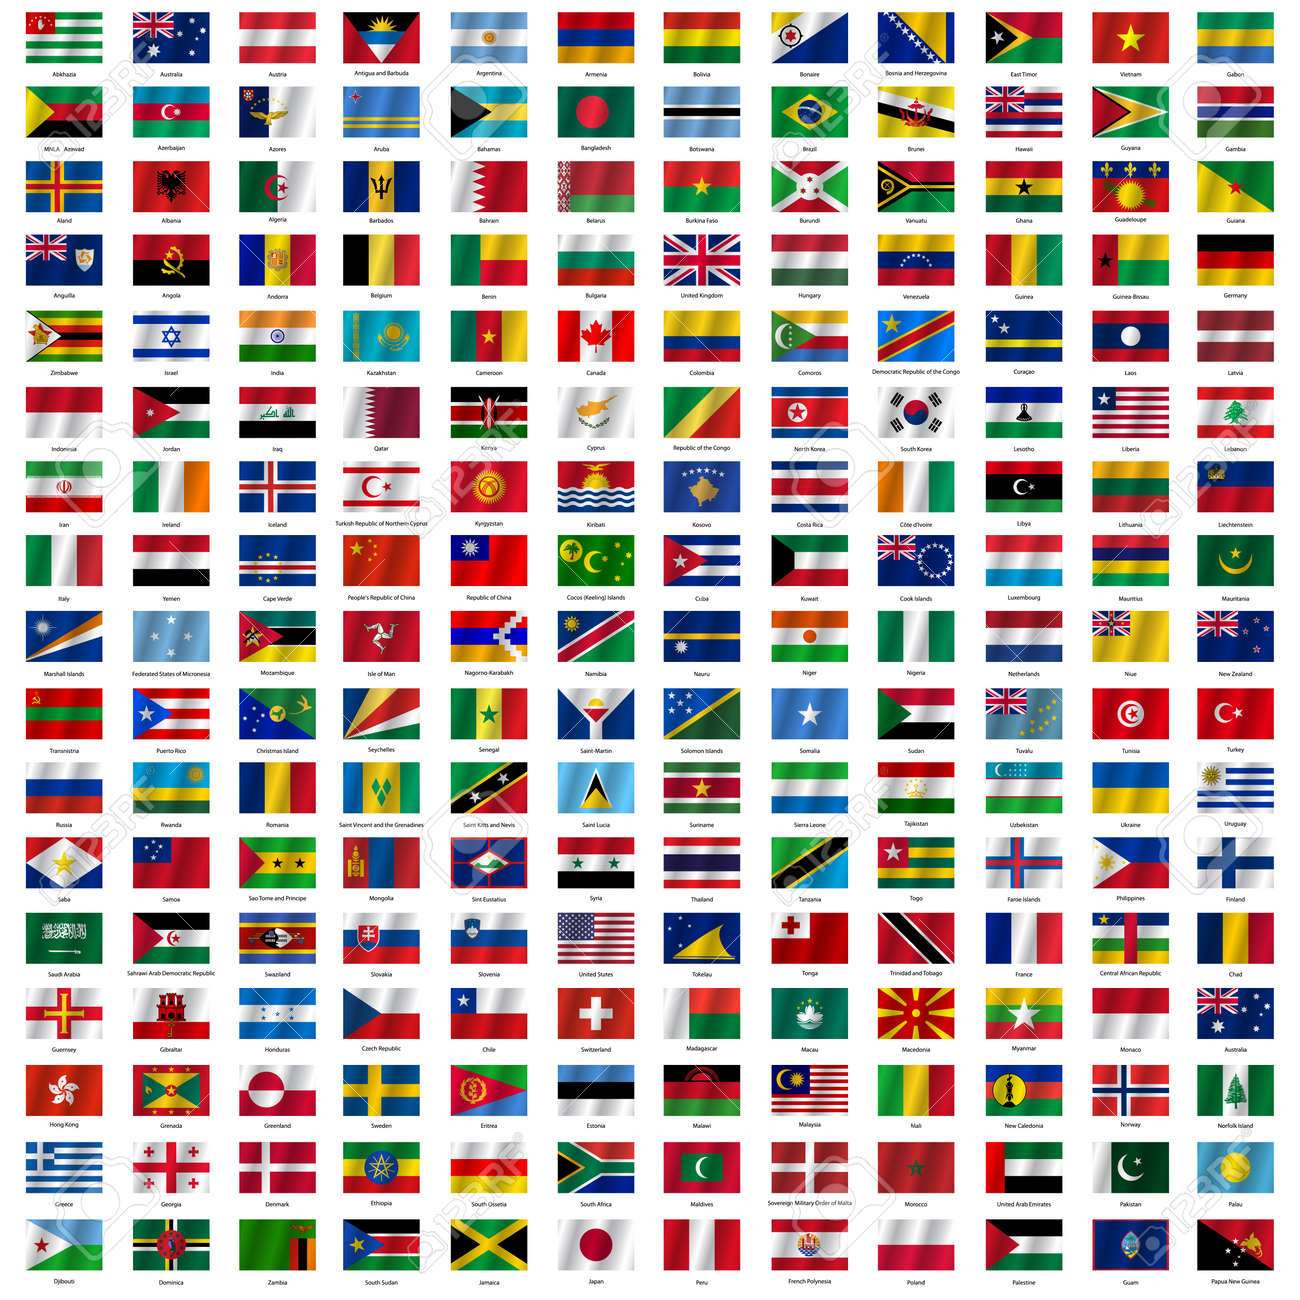 drapeaux du monde - Photo